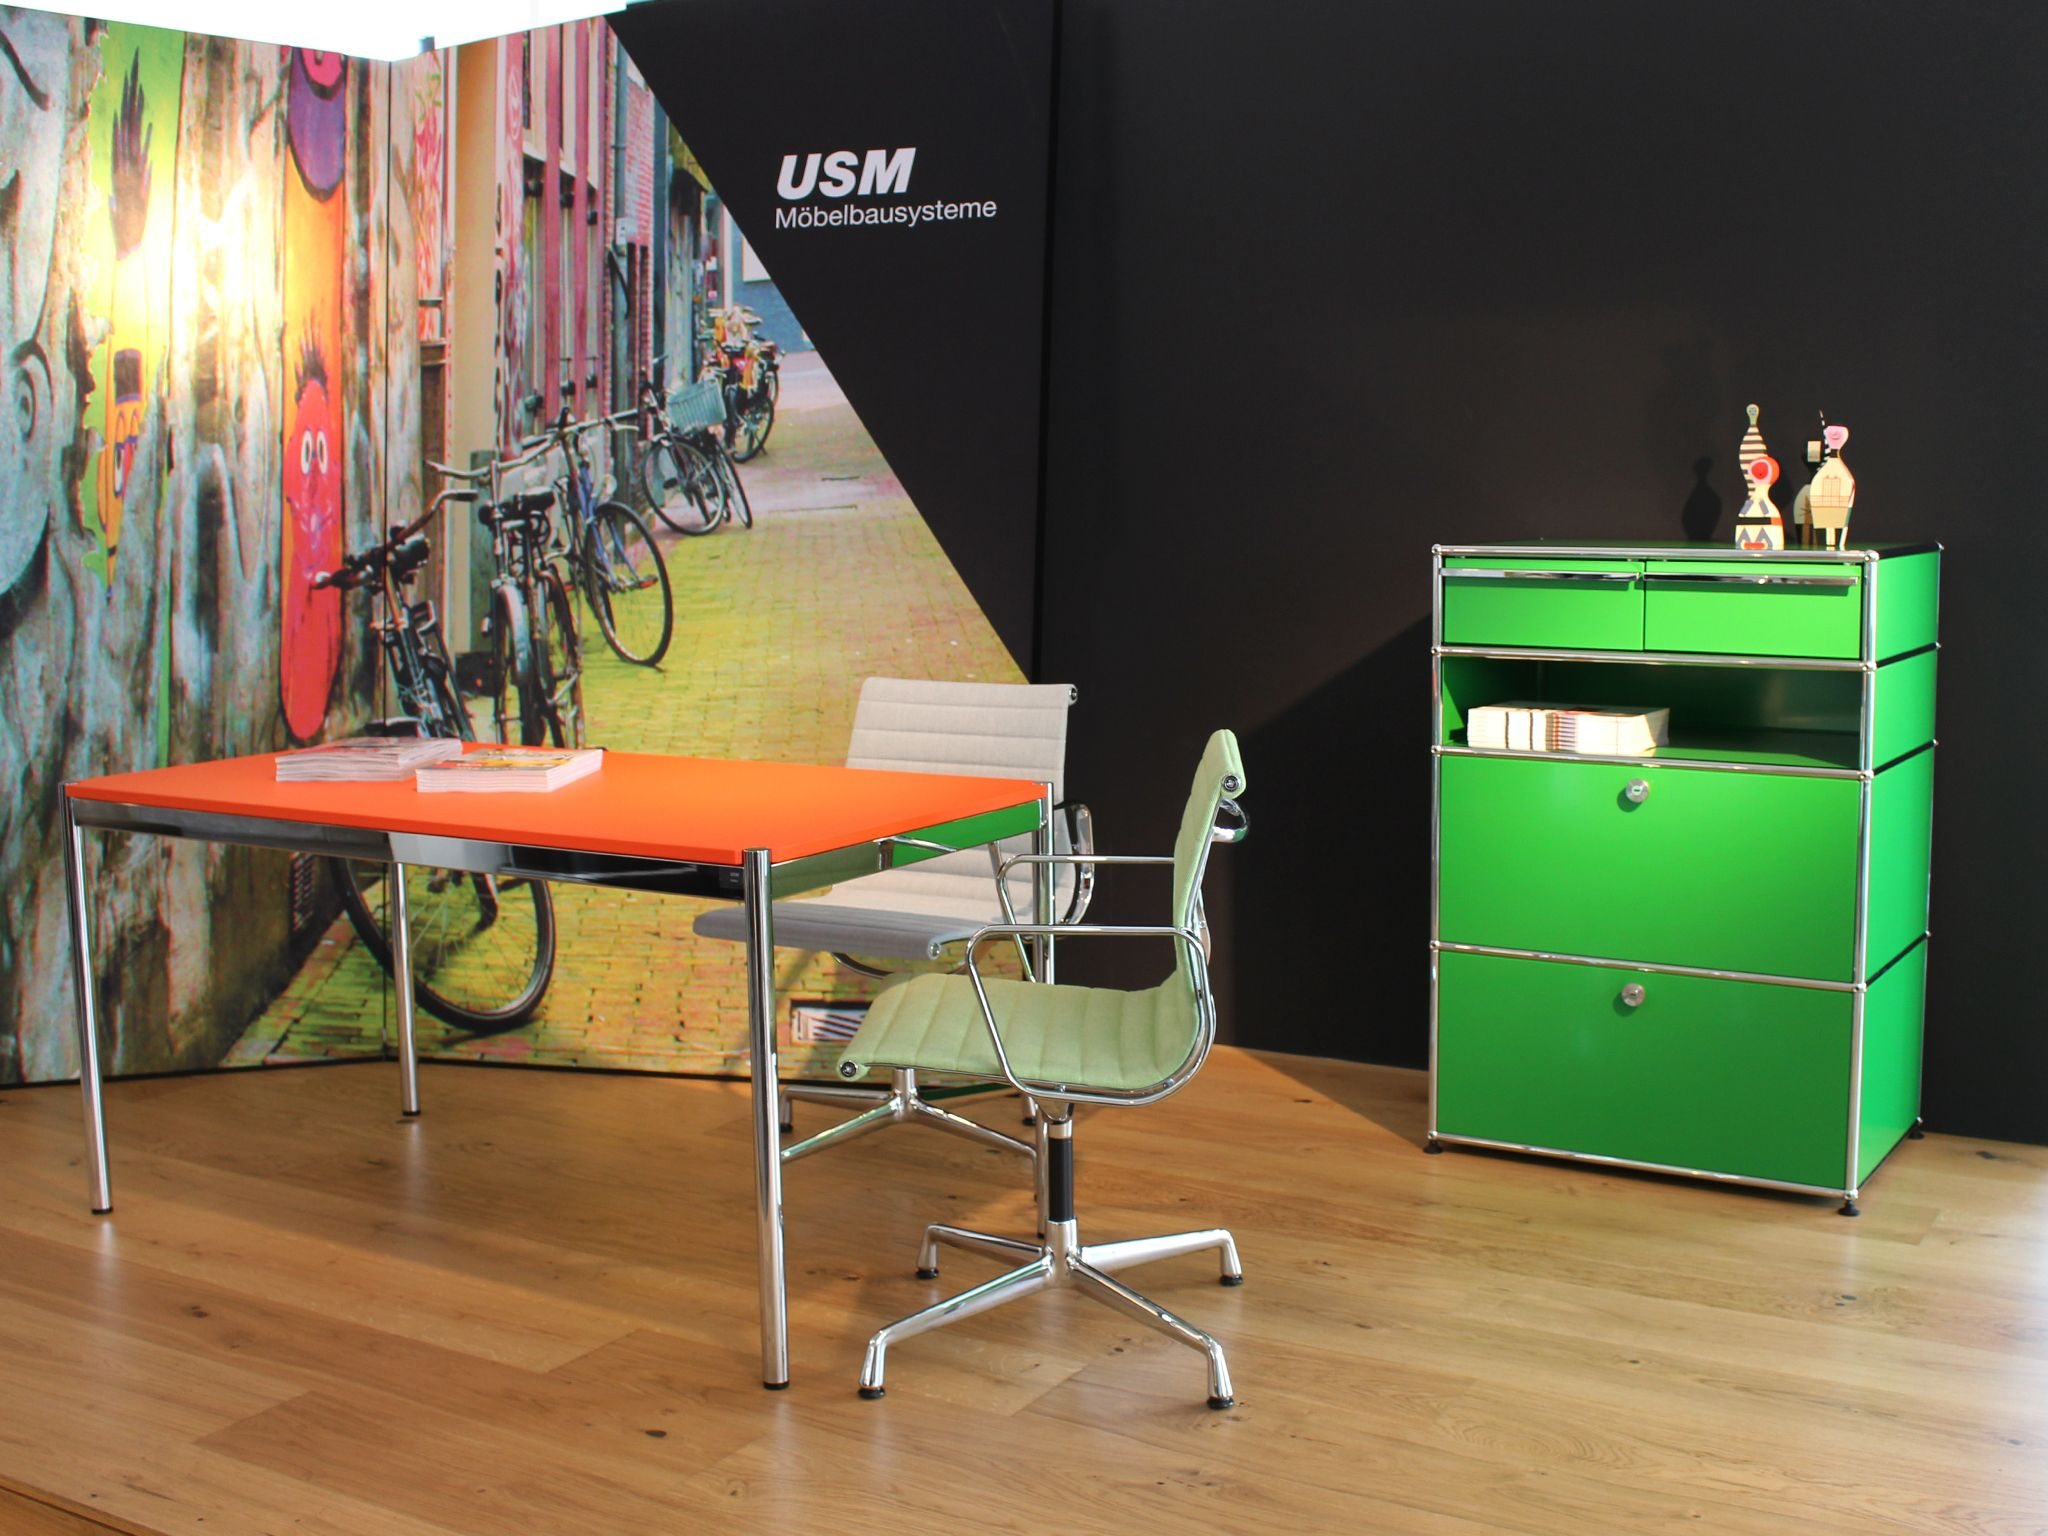 USM Exhibition at Tick in Bielefeld, Germany